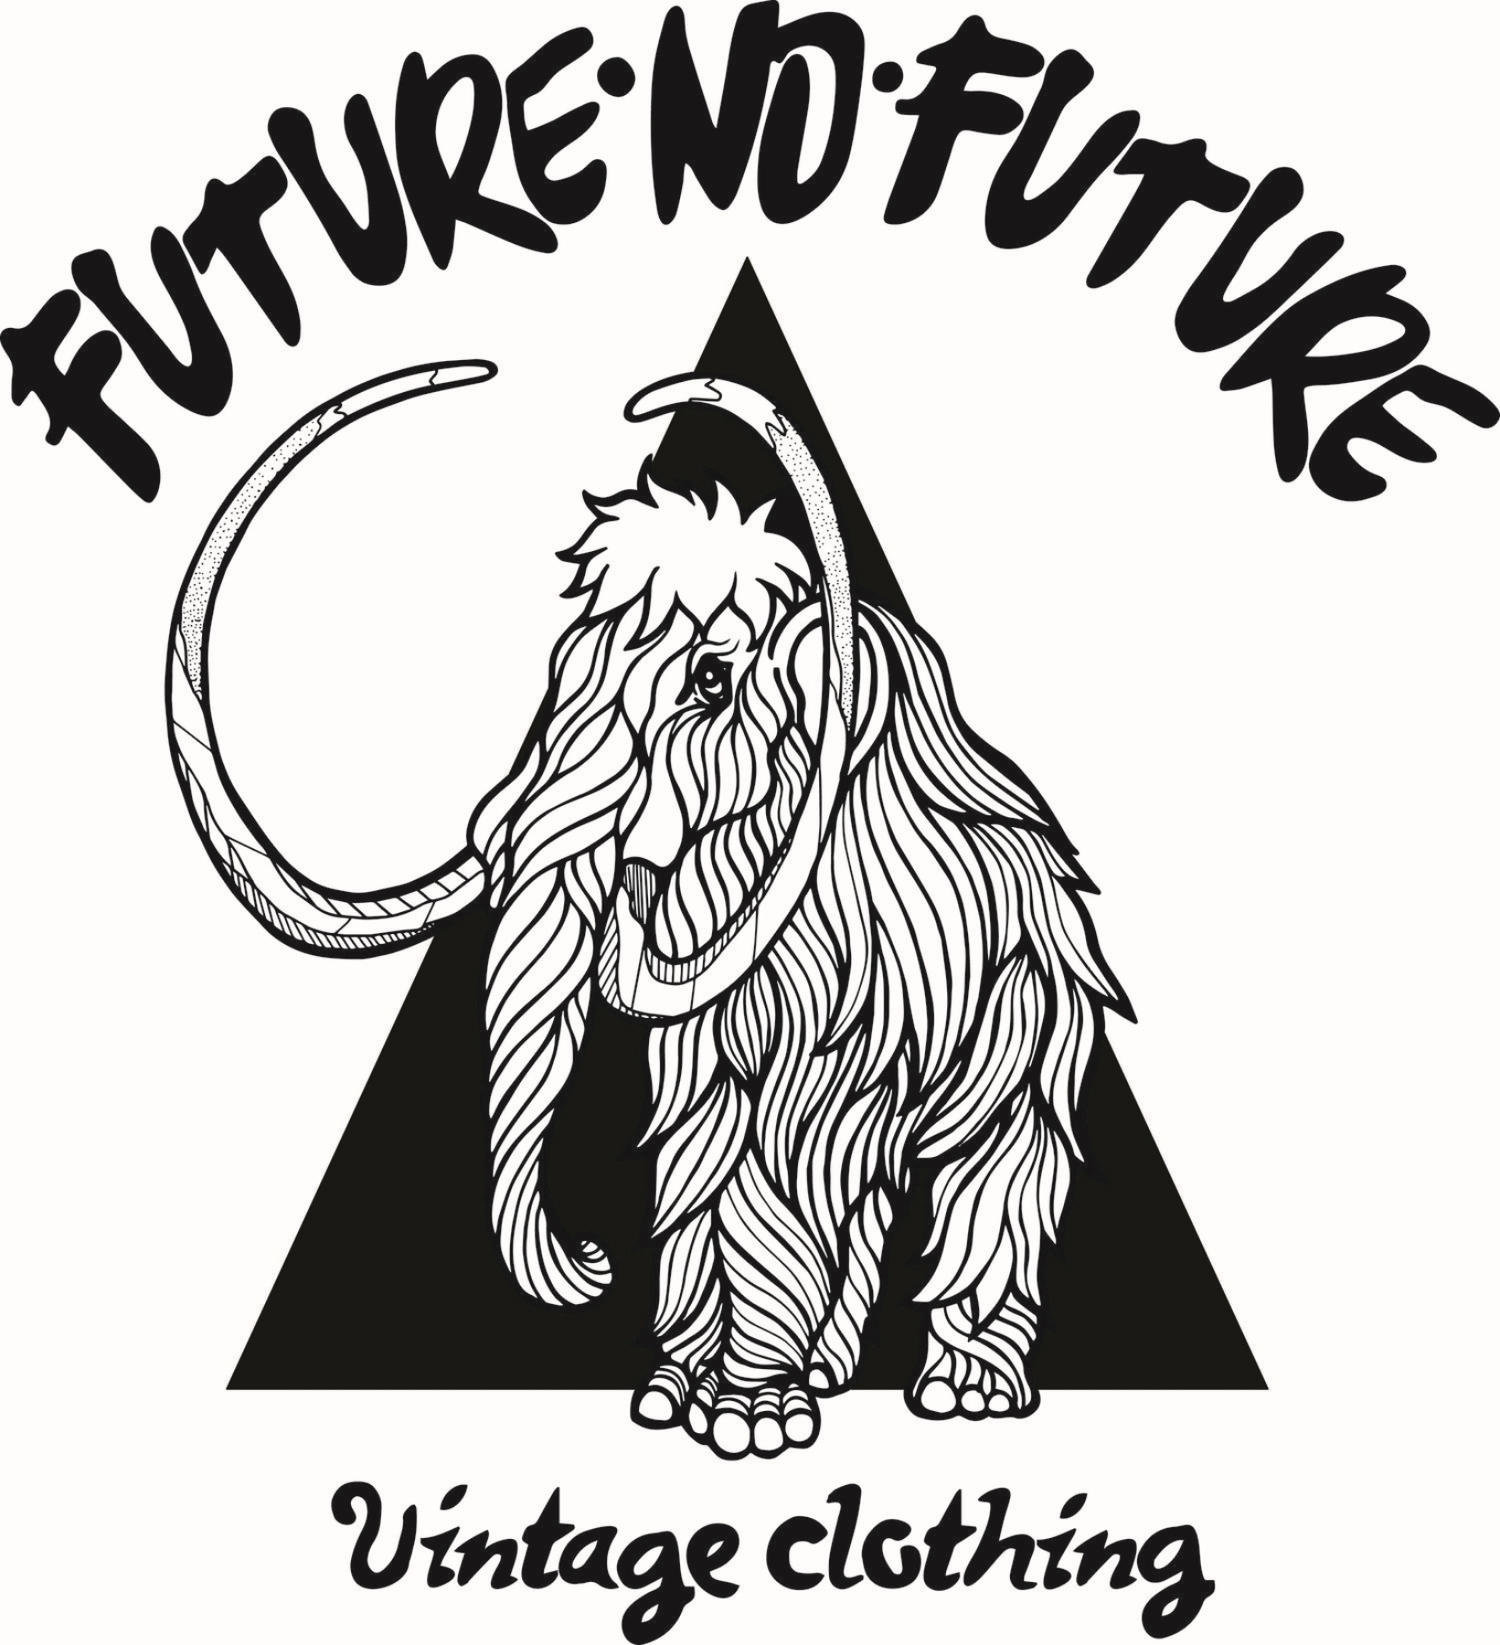 Future No Future vintage clothing